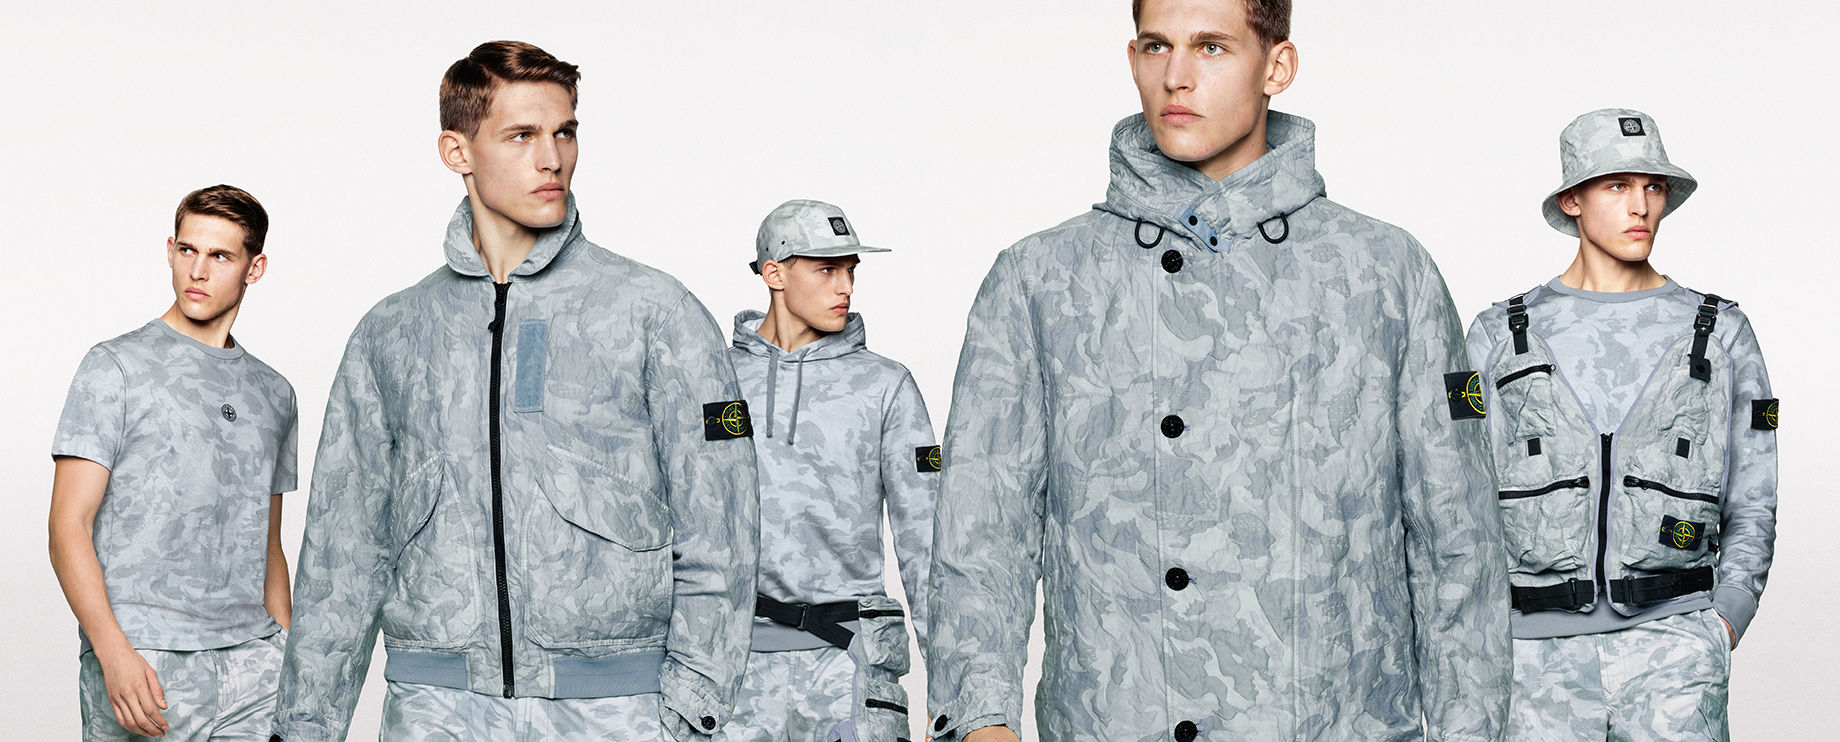 Five shots of the same model, wearing different styles of sweatshirts, pants, shorts, jackets, hats and a t shirt, all in the same gray camouflage print.